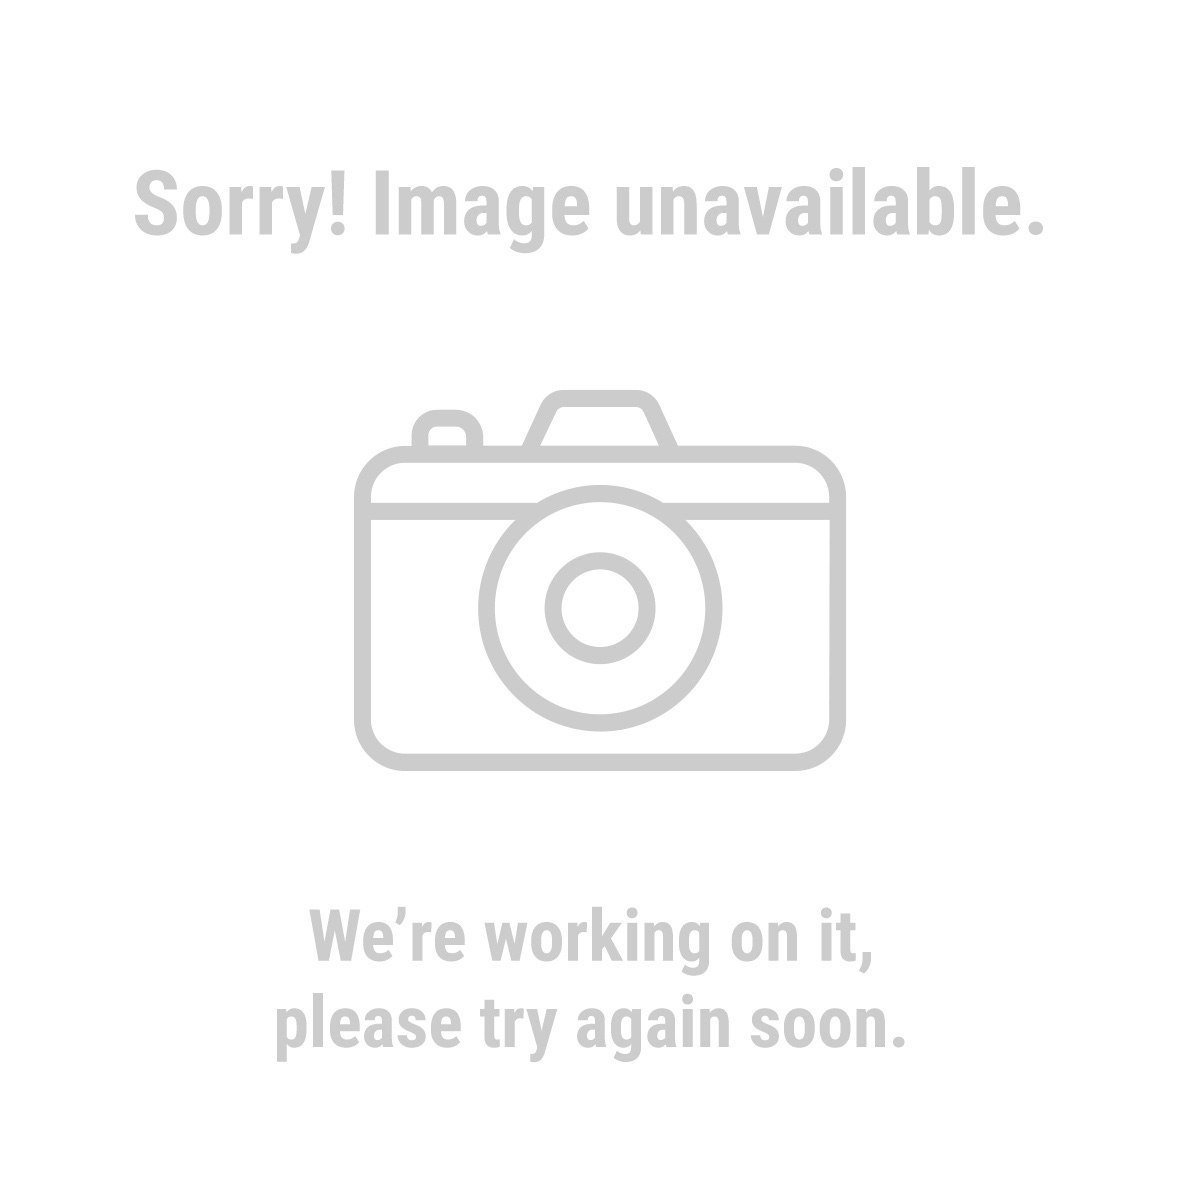 Haul-Master 63098 18 In. x 12 In. 1000 lb. Capacity Hardwood Dolly